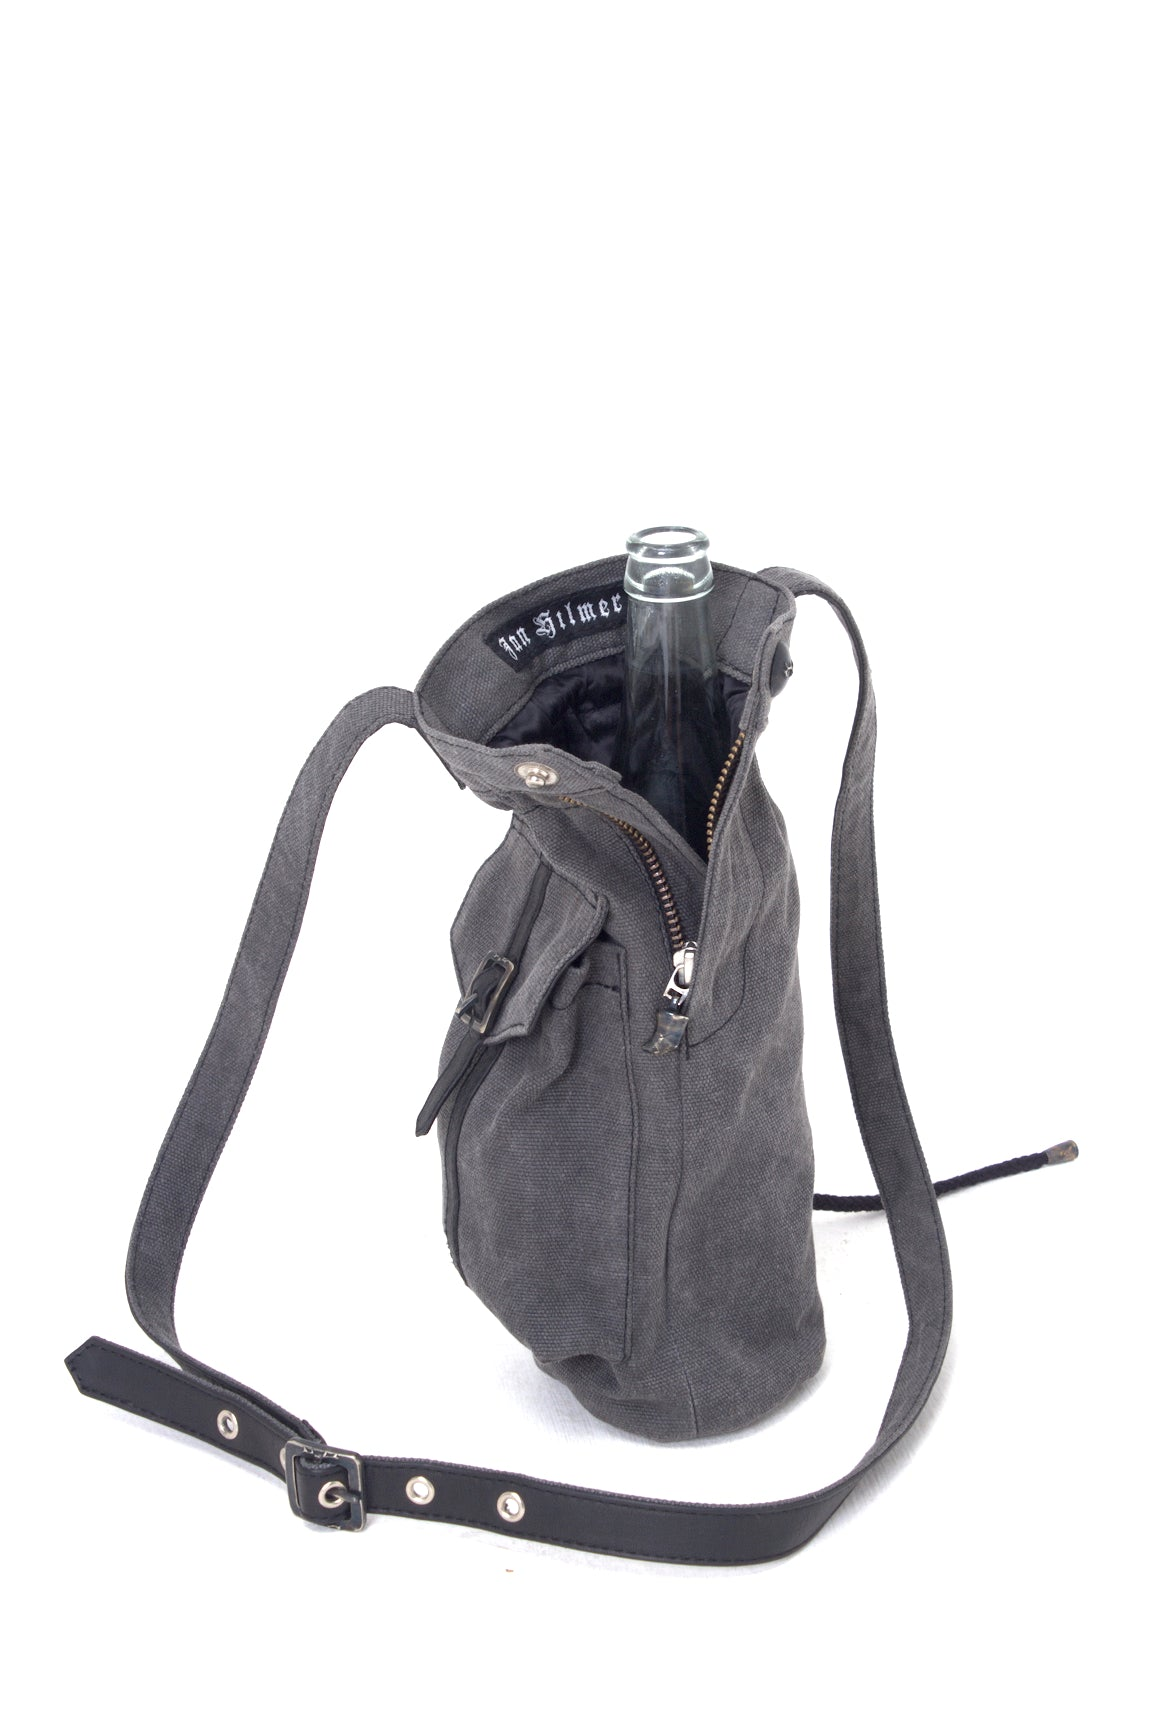 Coyote Bottle Bag - Combo Denim/Leather